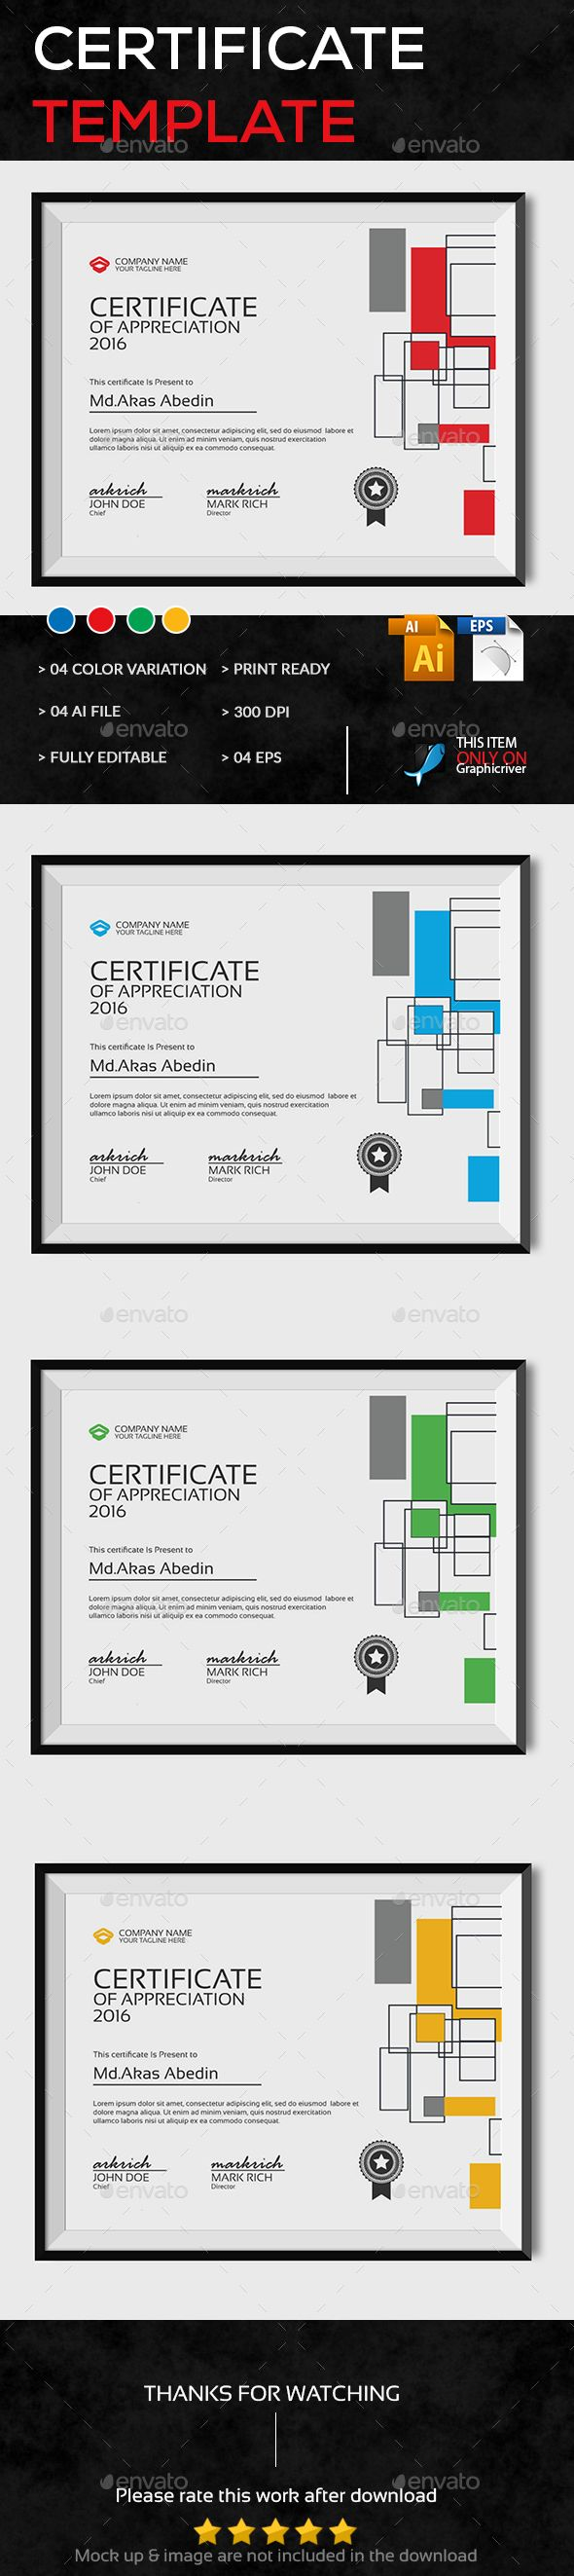 Certificate template eps template value coupon document certificate template eps template value coupon document illustration certificate template design pinterest certificate and template yadclub Choice Image